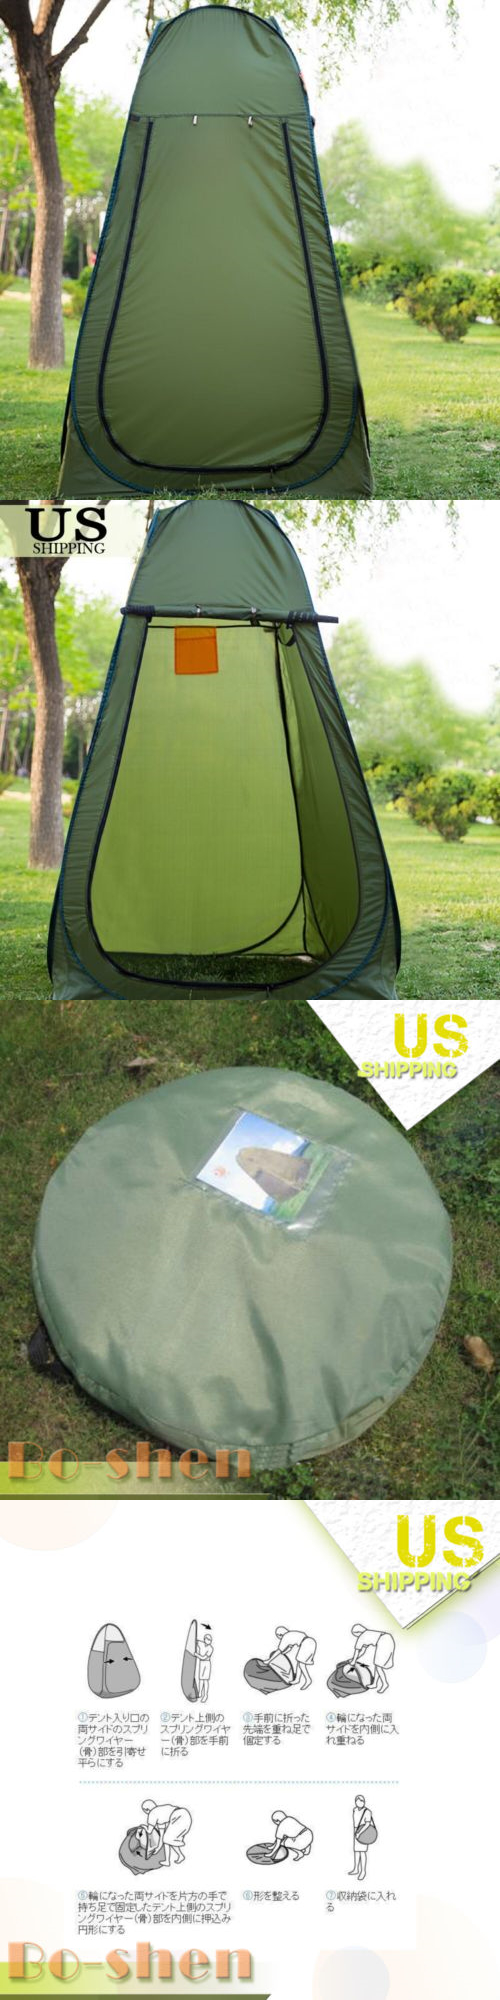 Other C&ing Hygiene Accs 181400 Portable Pop Up Tent C&ing Outdoor Toilet Shower Changing Room & Other Camping Hygiene Accs 181400: Portable Pop Up Tent Camping ...